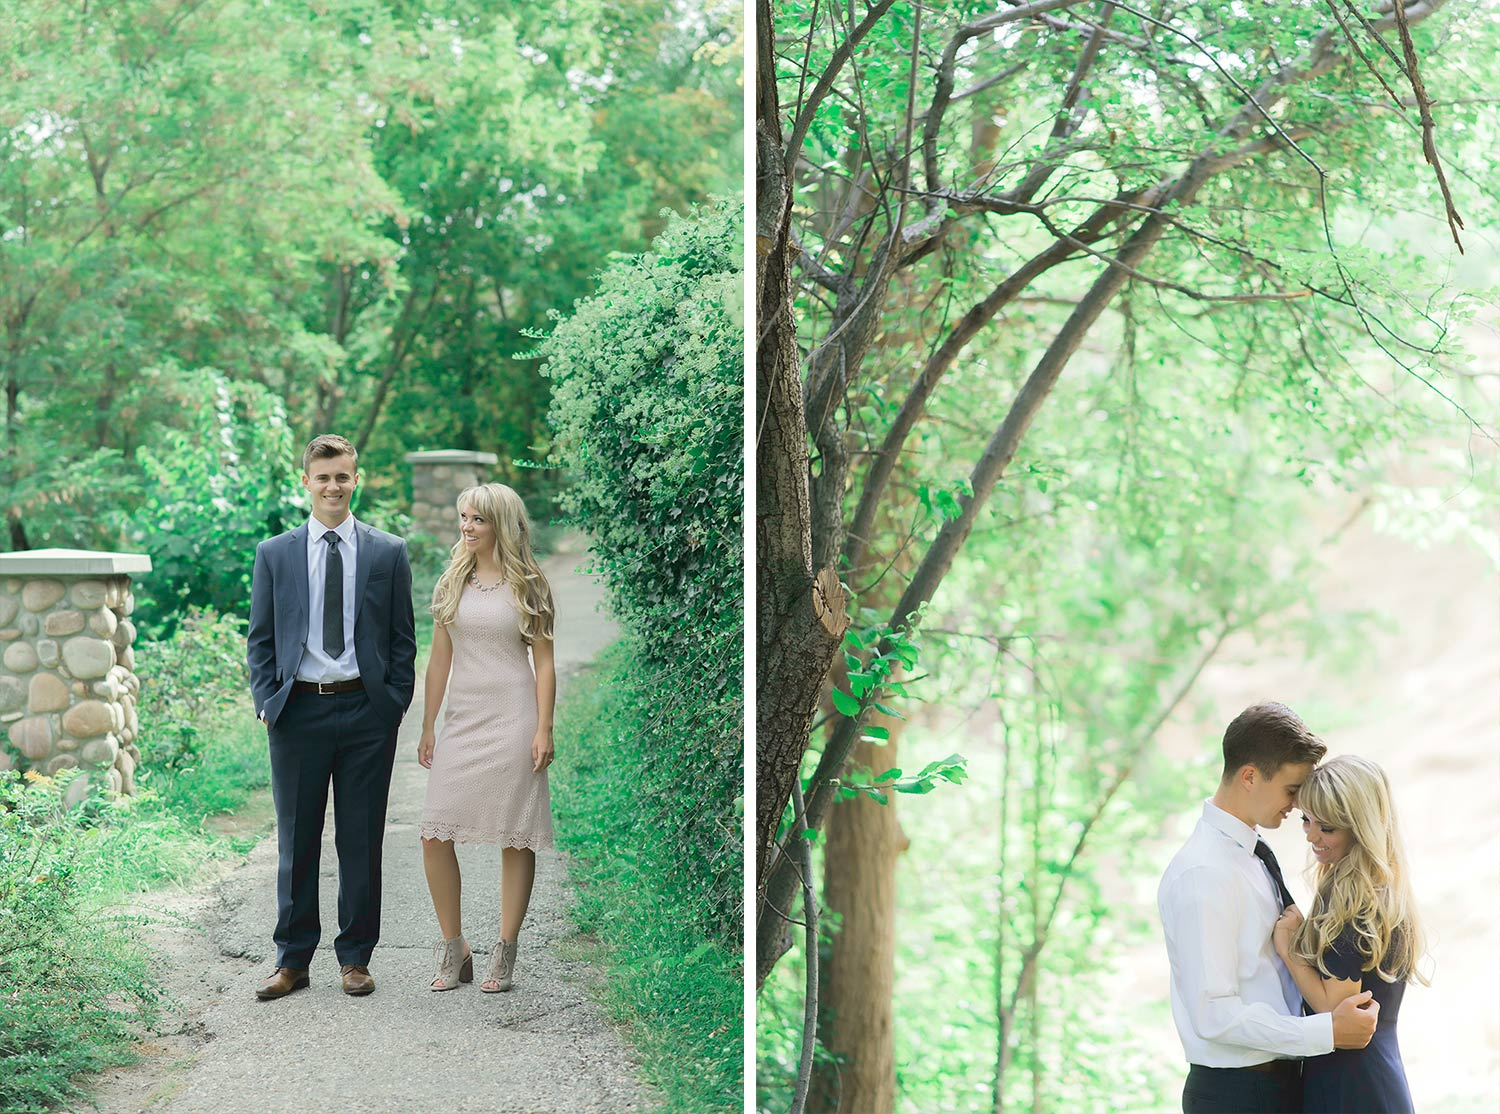 Two engagement images of a couple, one of them standing on a path with her looking at him and the other with their foreheads touching.